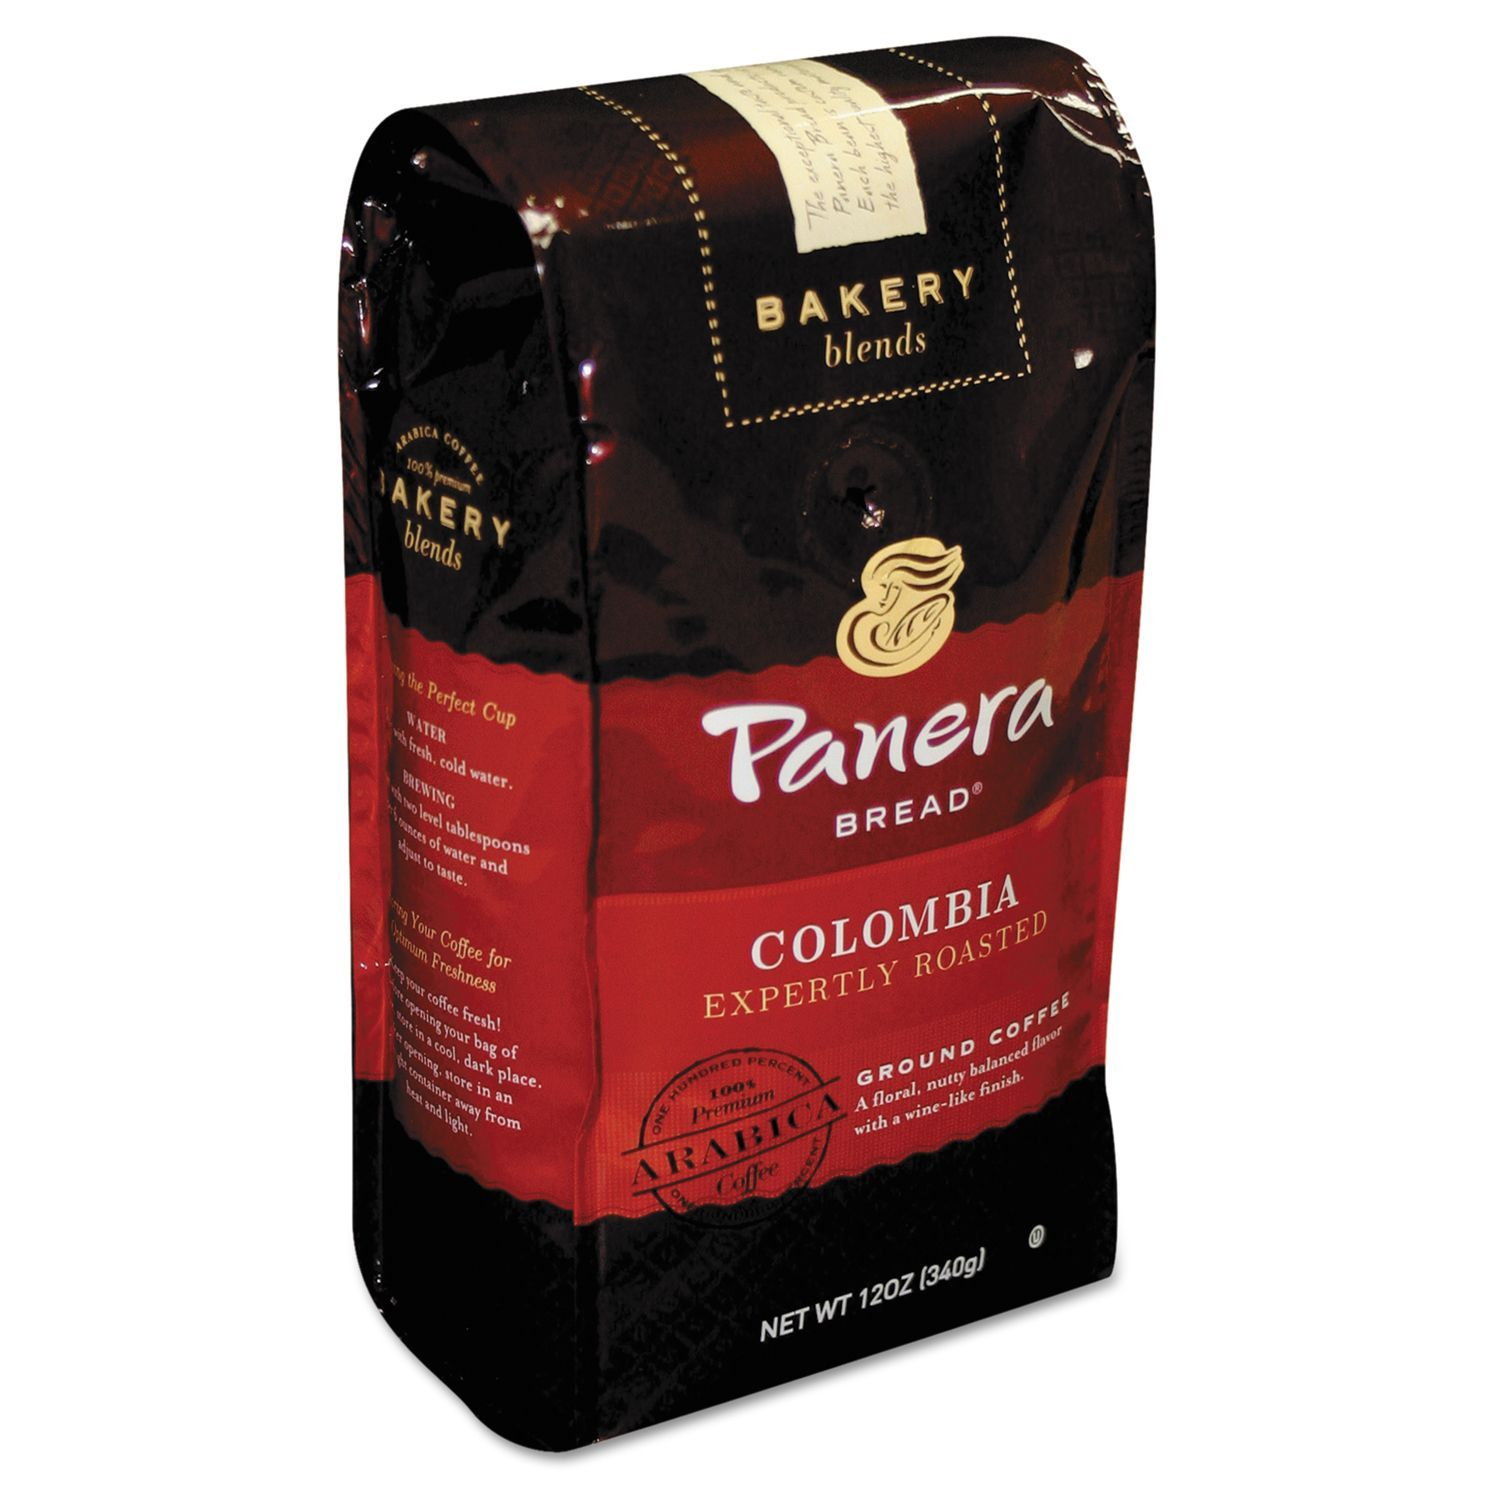 Panera Bread Coffee Box Prepossessing Panera Bread Colombia Roast 12 Oz Bag Ground  My Favorite Things Design Ideas